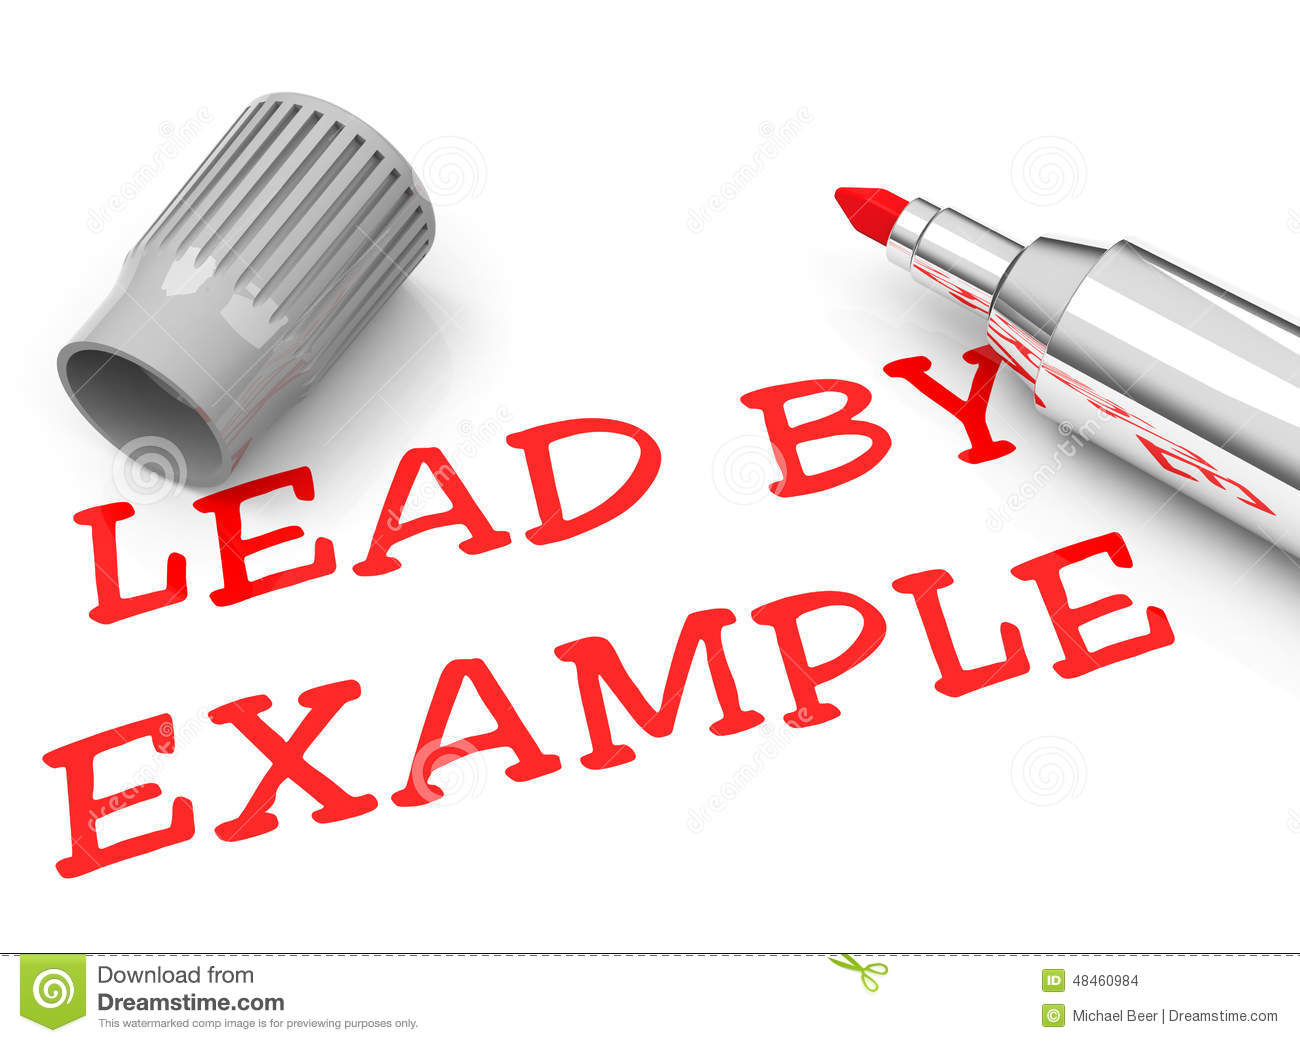 lead by example illustration 48460984 - megapixl